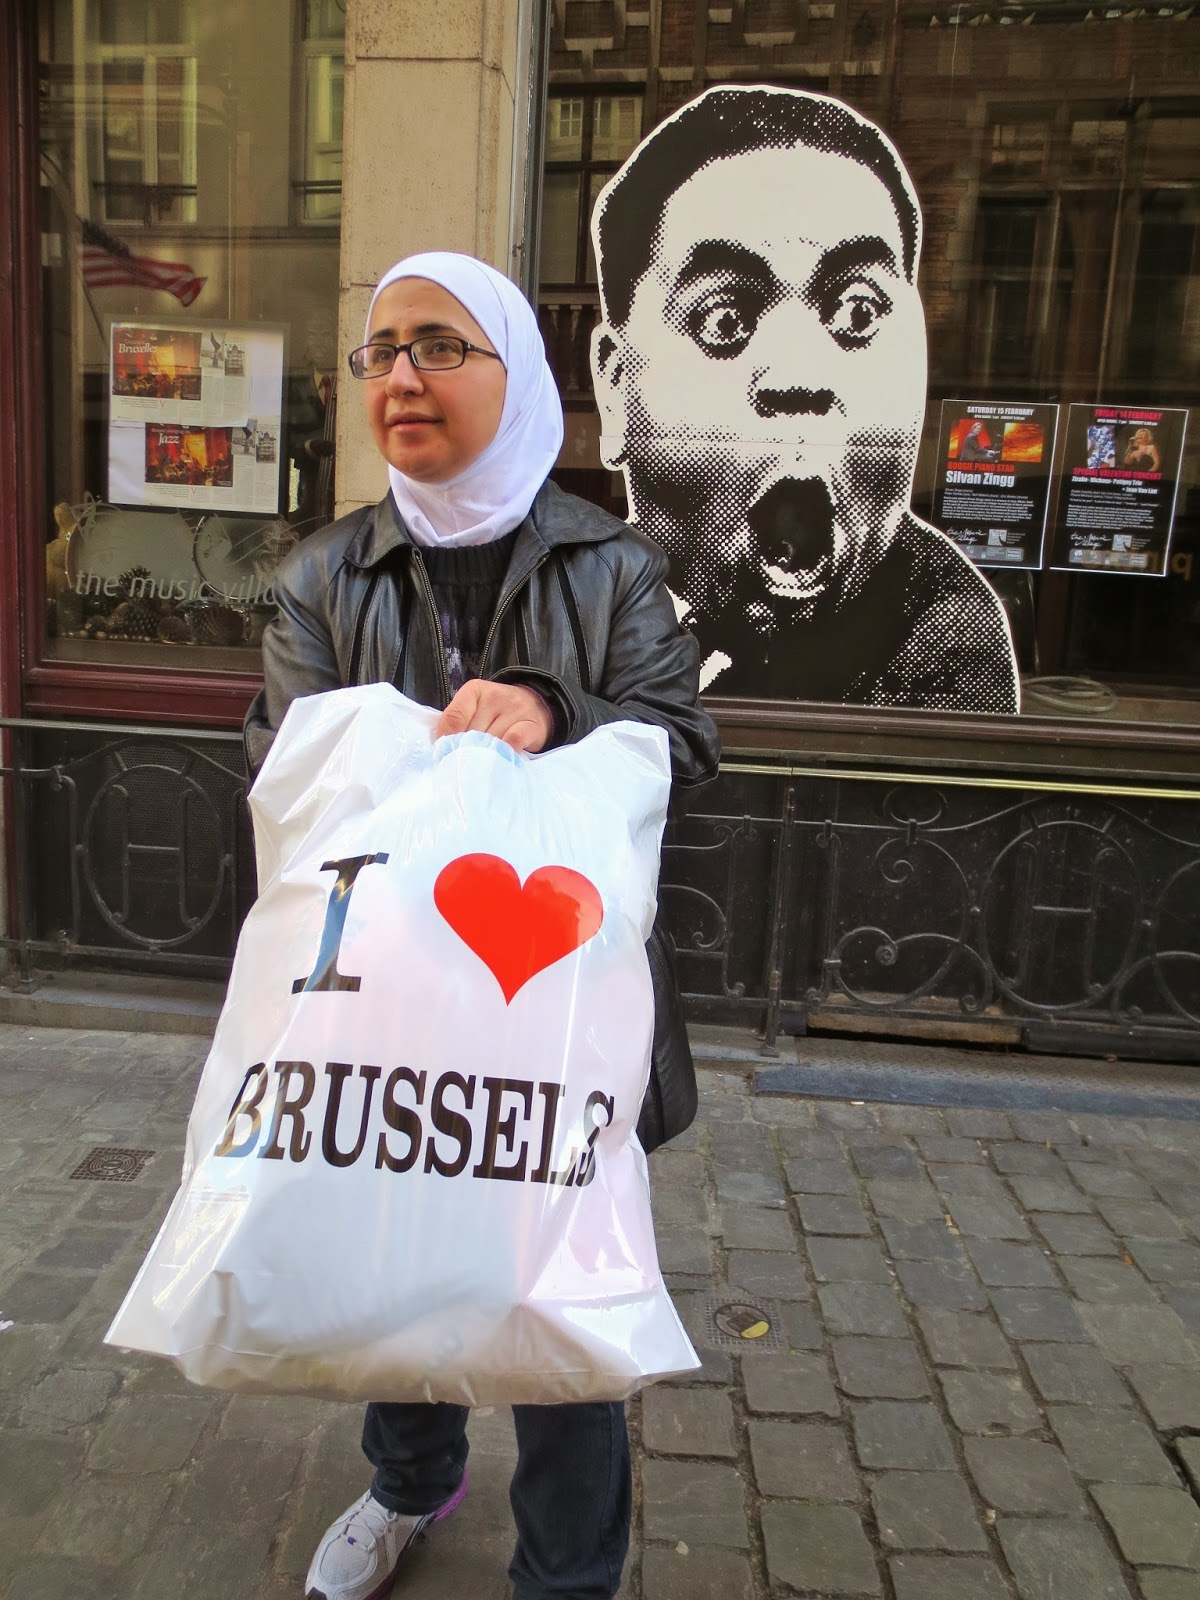 The Travelled Monkey - I HEART Brussels